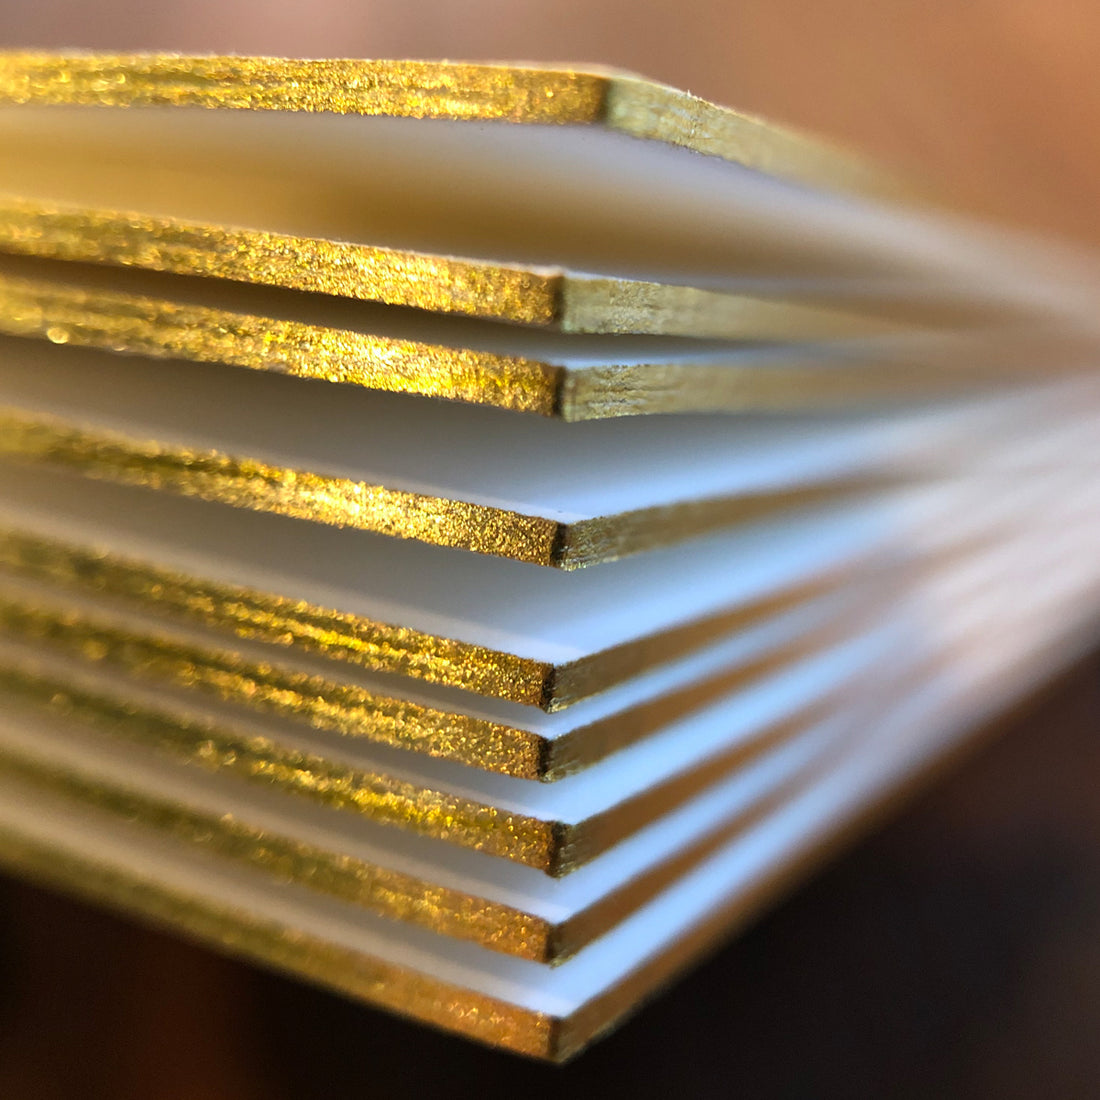 Detail photo of gilded edge treatment